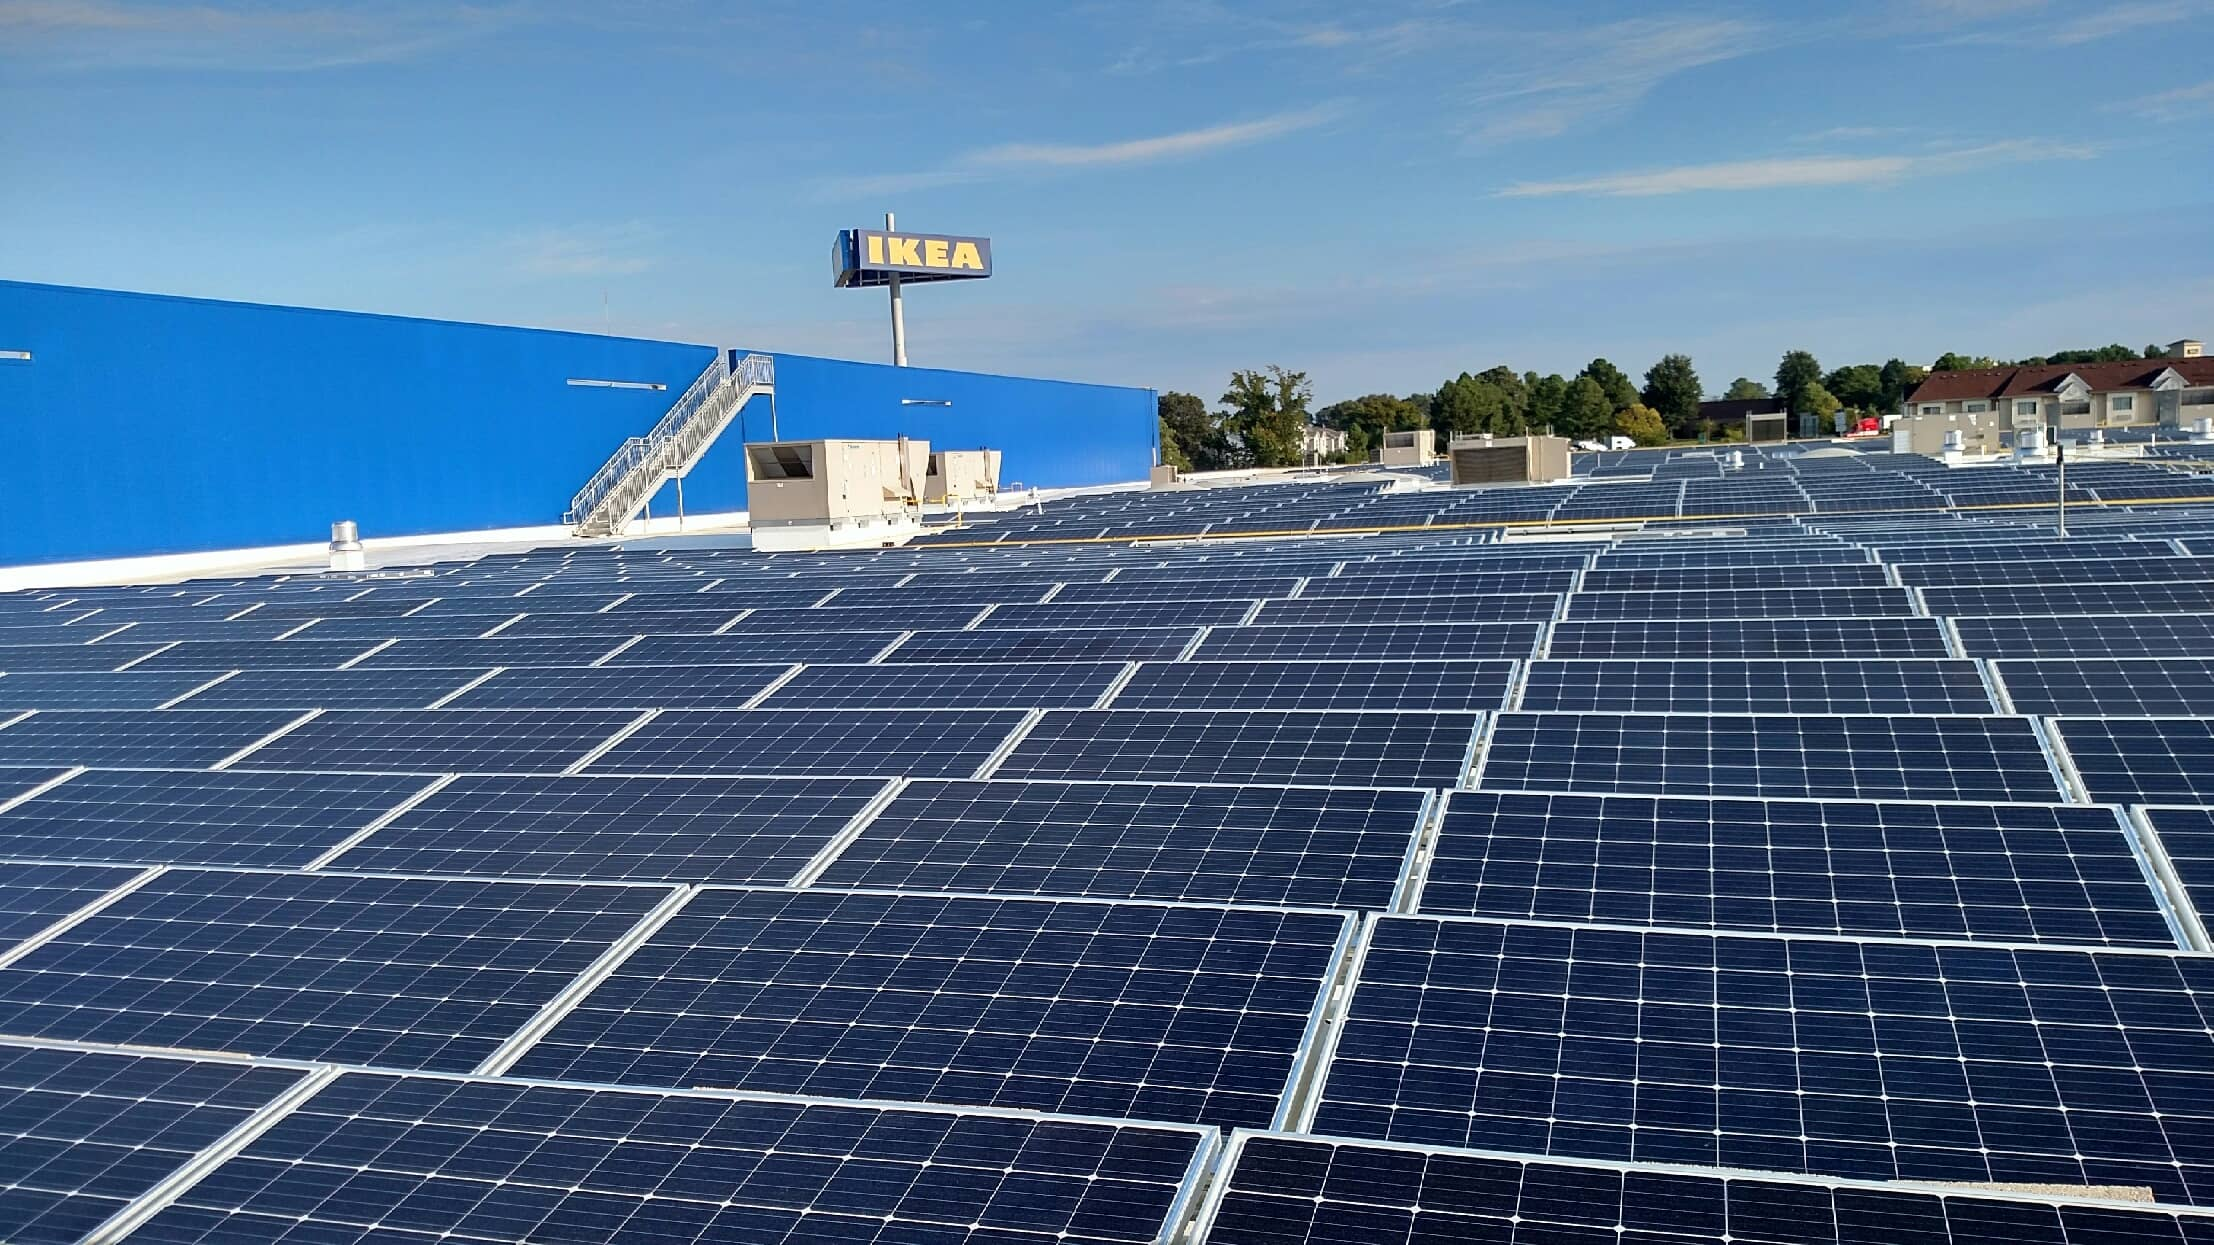 ikea finishes tennessee 39 s biggest rooftop solar array solar industry. Black Bedroom Furniture Sets. Home Design Ideas